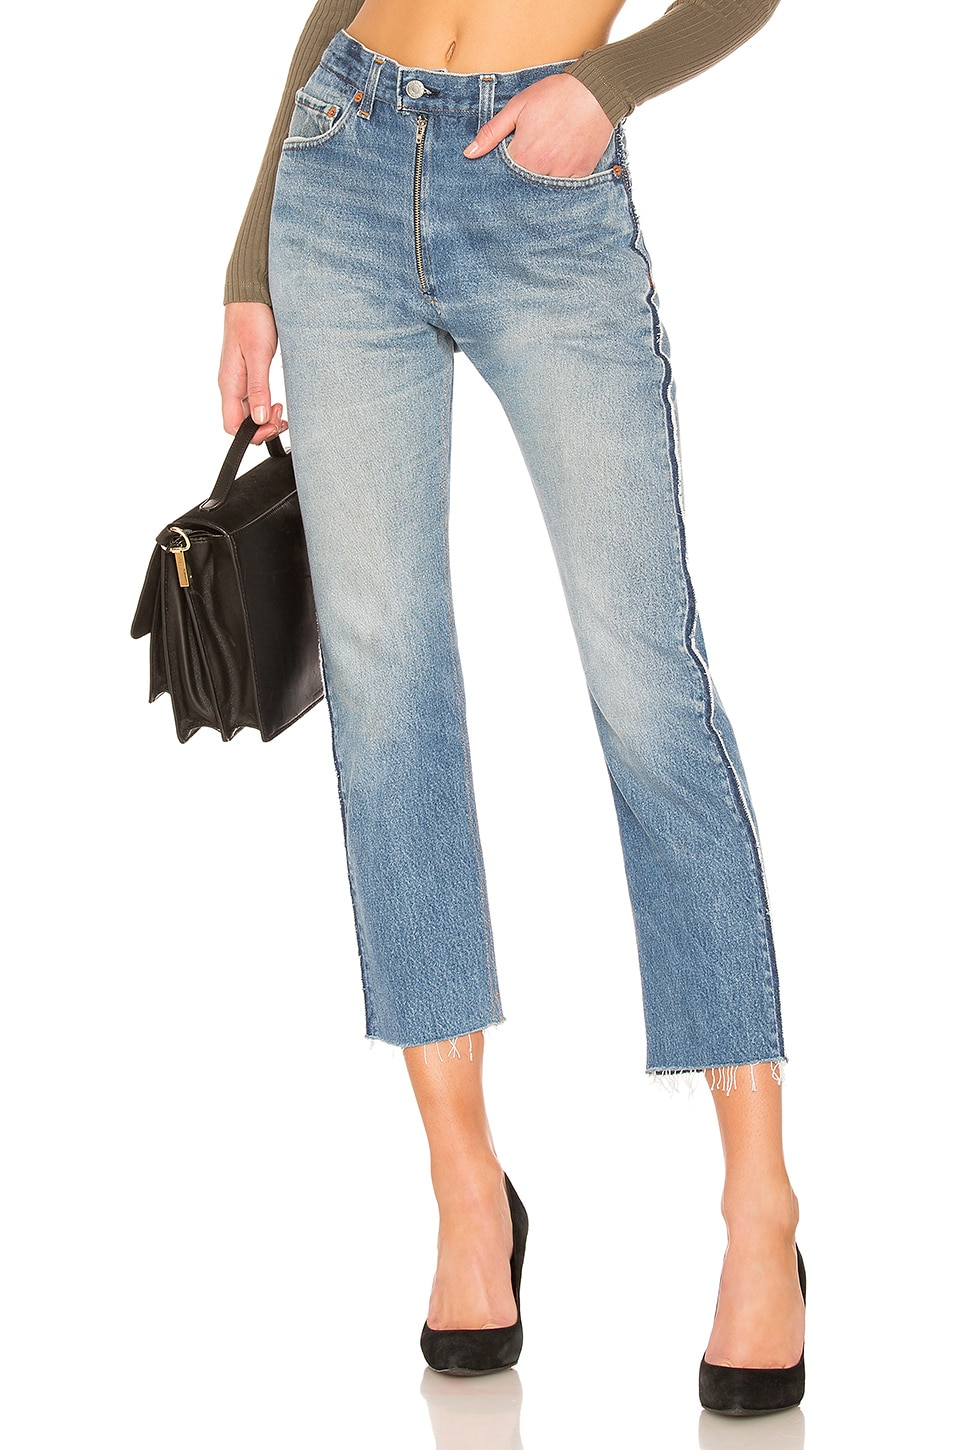 LEVI's High Rise Ankle Zip Front